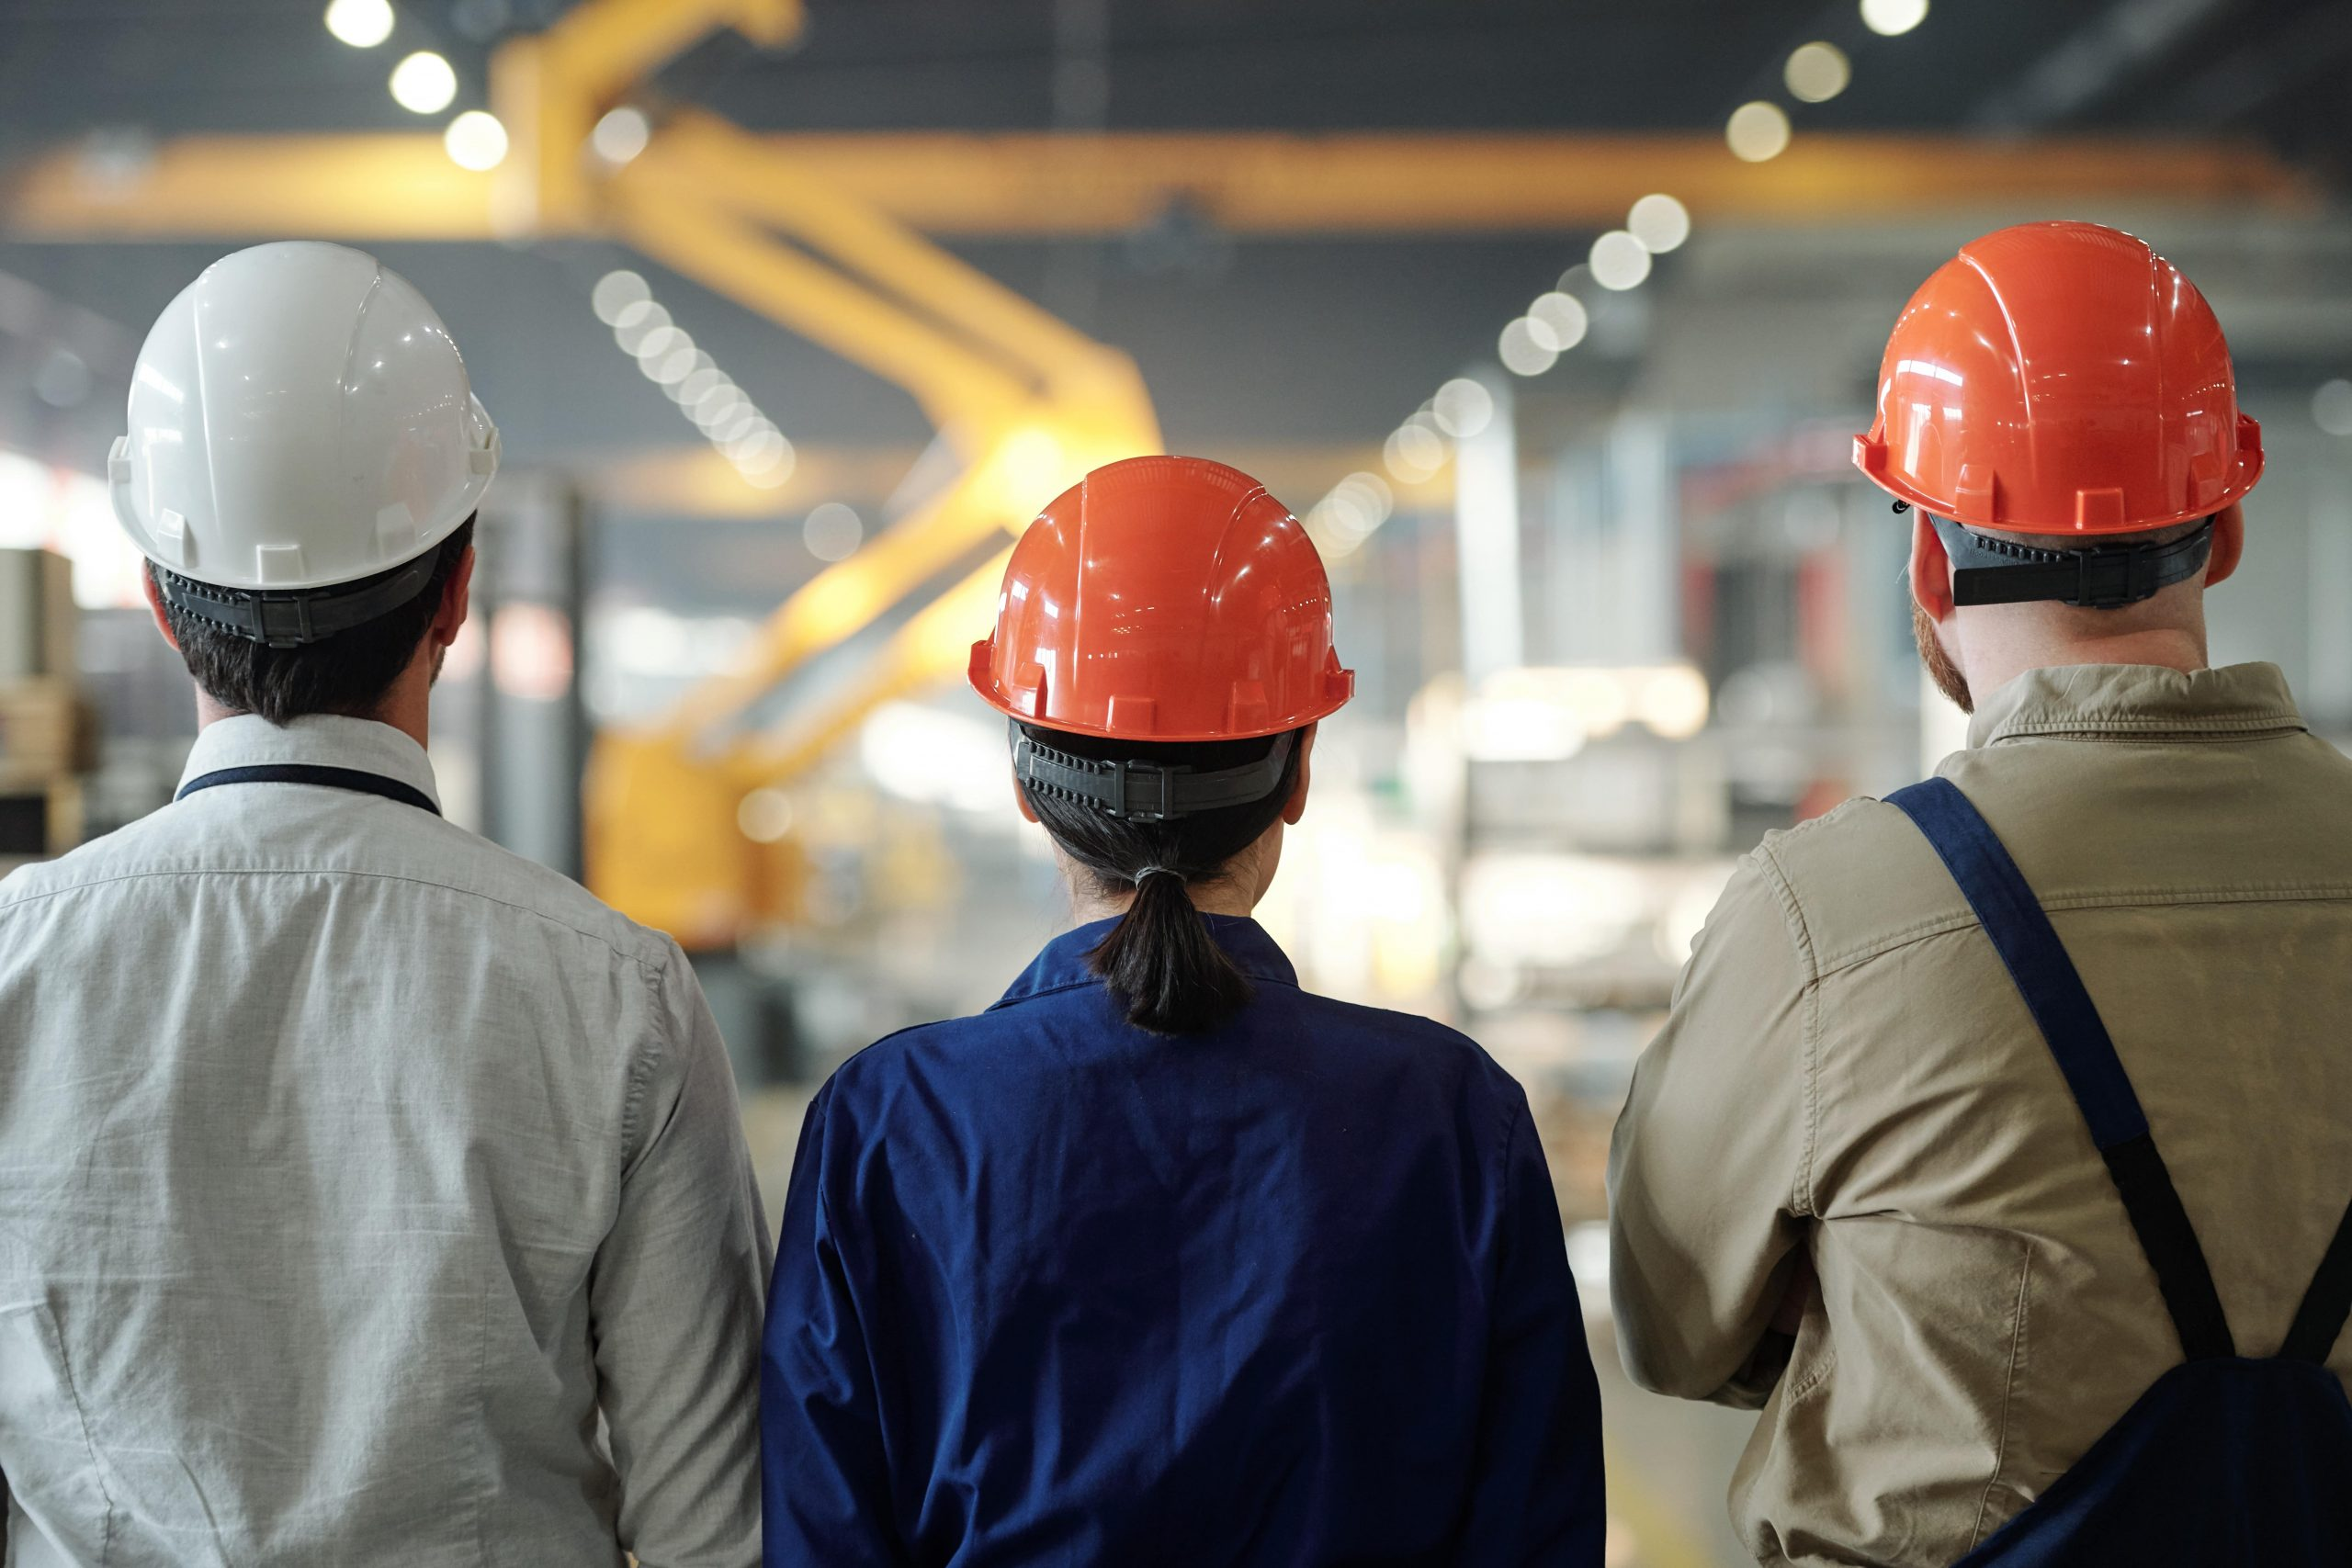 Manufacturing industries image with workers